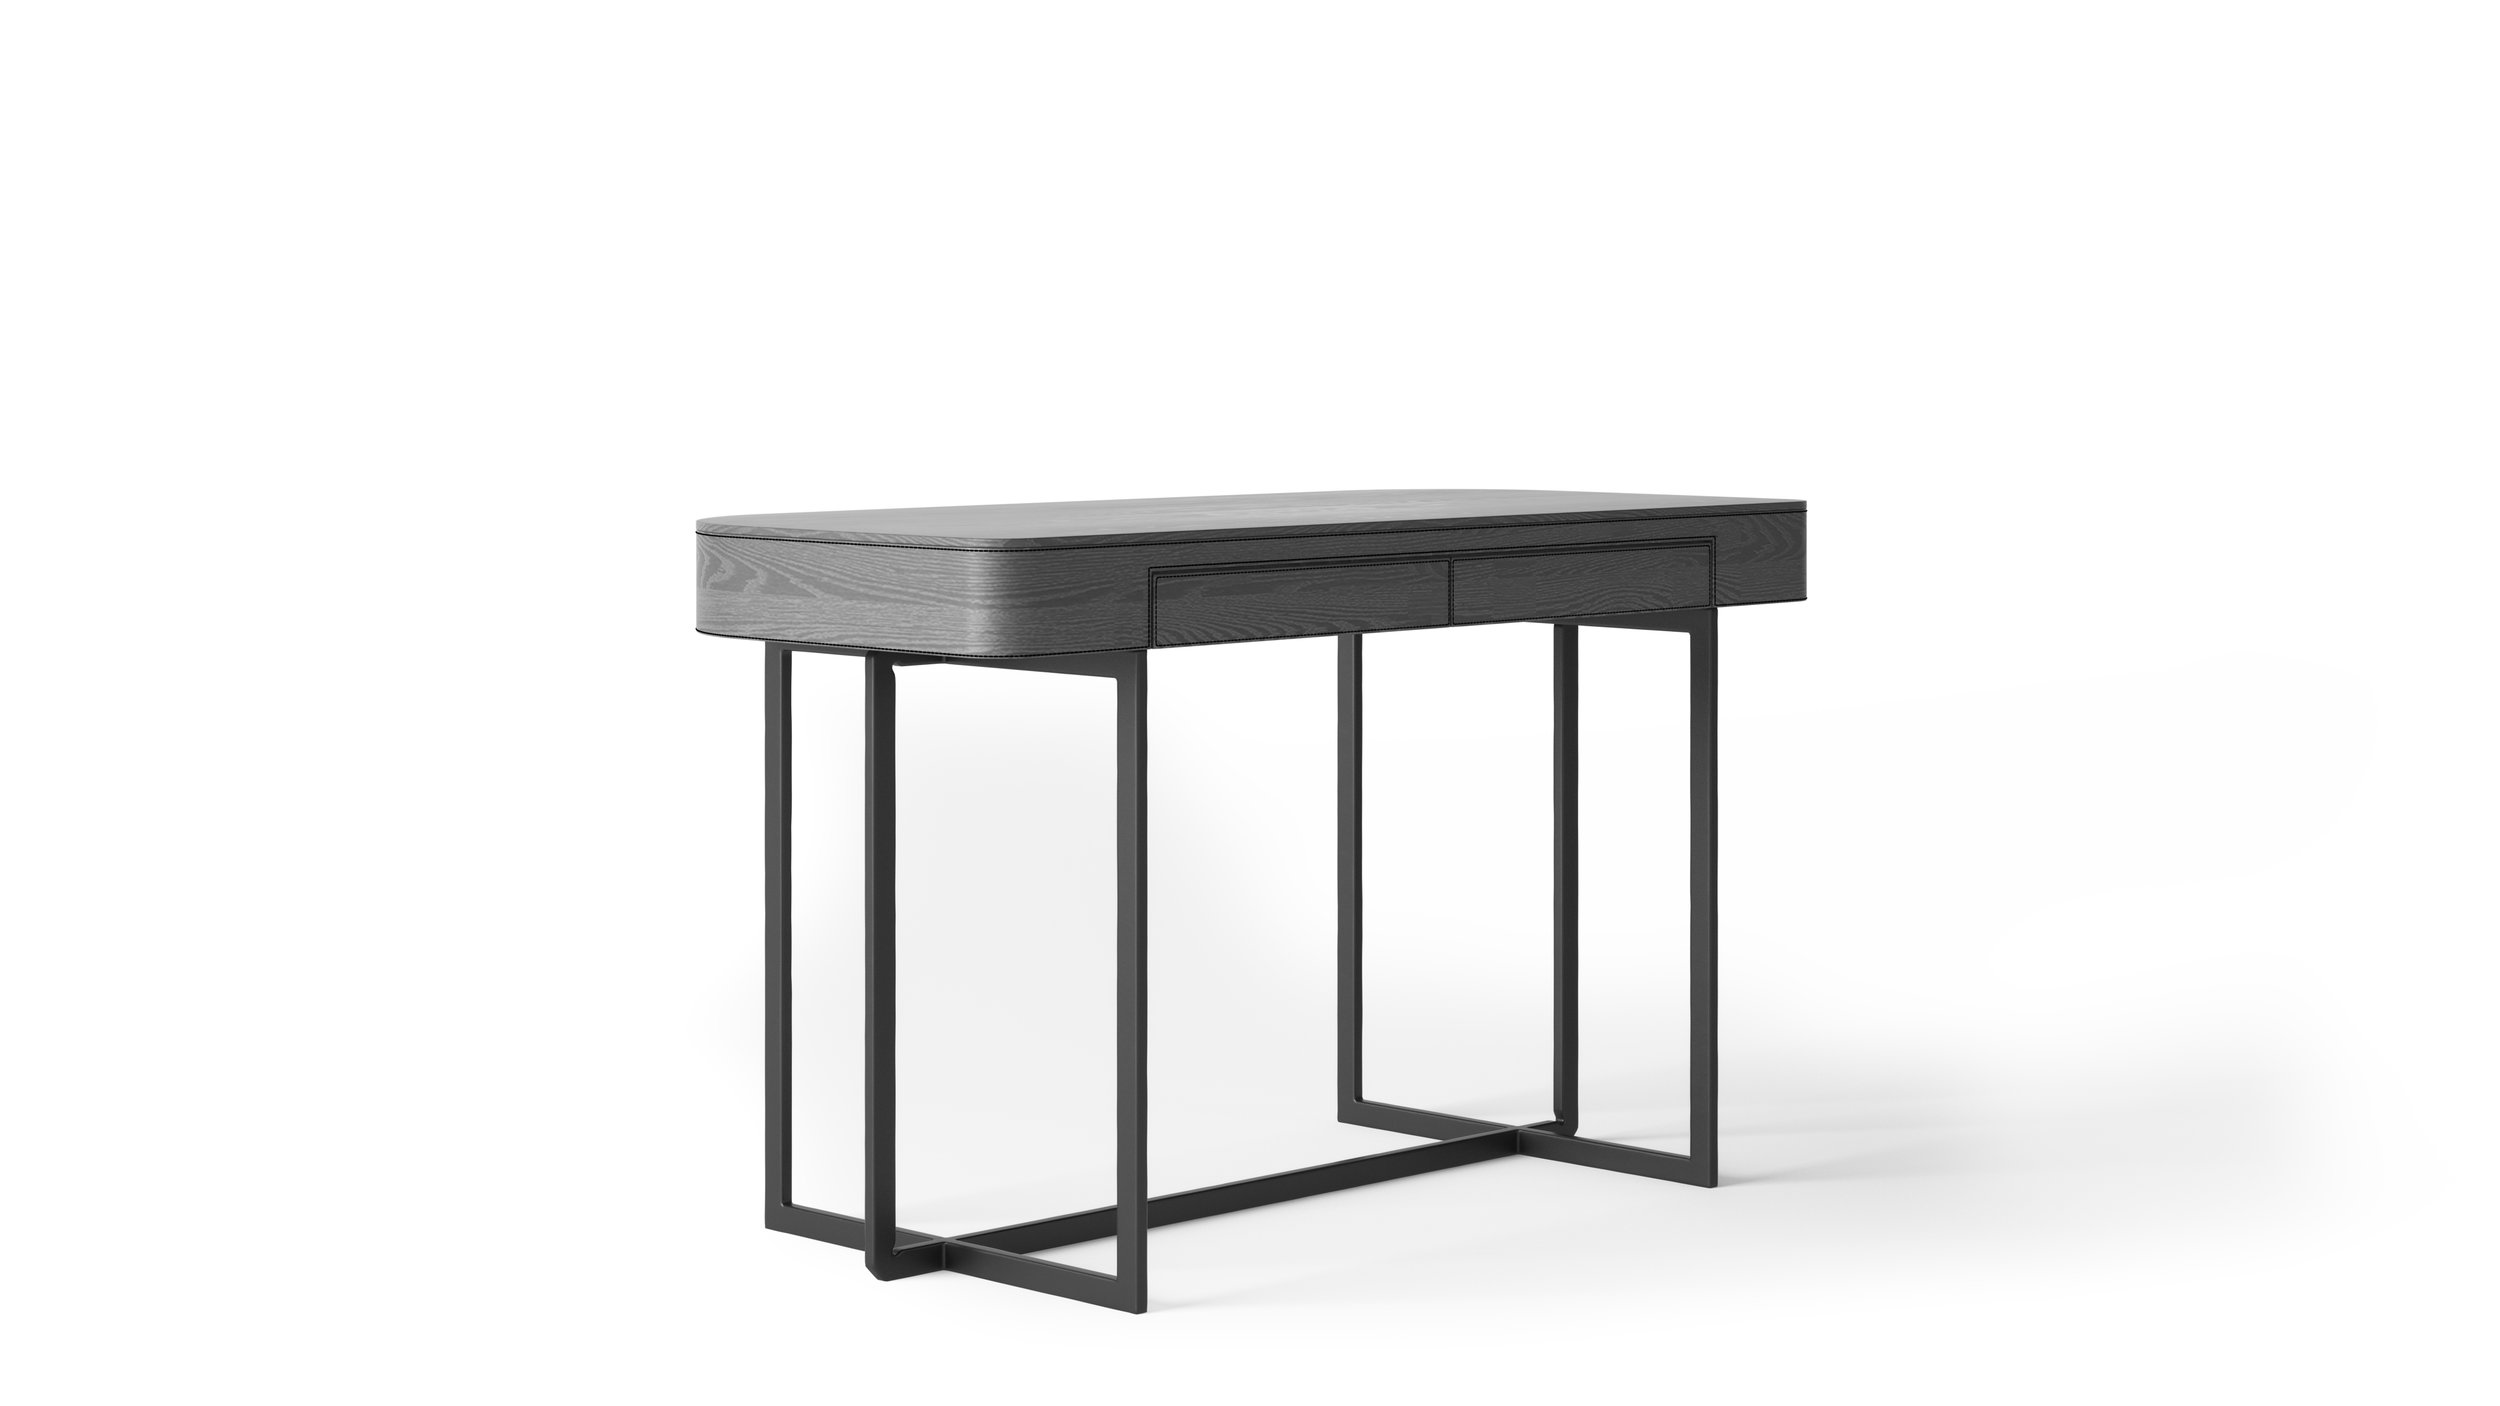 Furniture Model, Lounge Style Desk